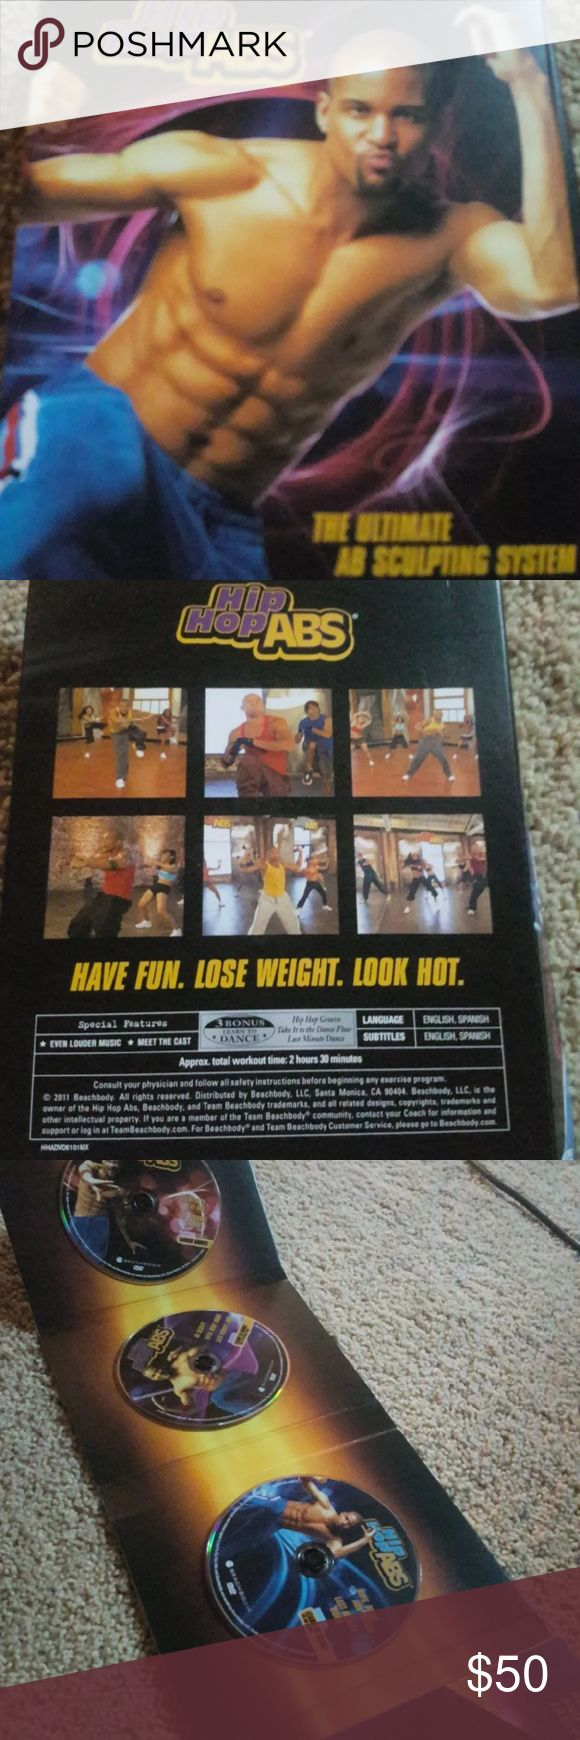 Beachbody workout DVD Complete Hip Hop Abs DVD set. Workout with Shaun T, get a hard body and learn some moves to show off at the club Open to offers and will bundle Other